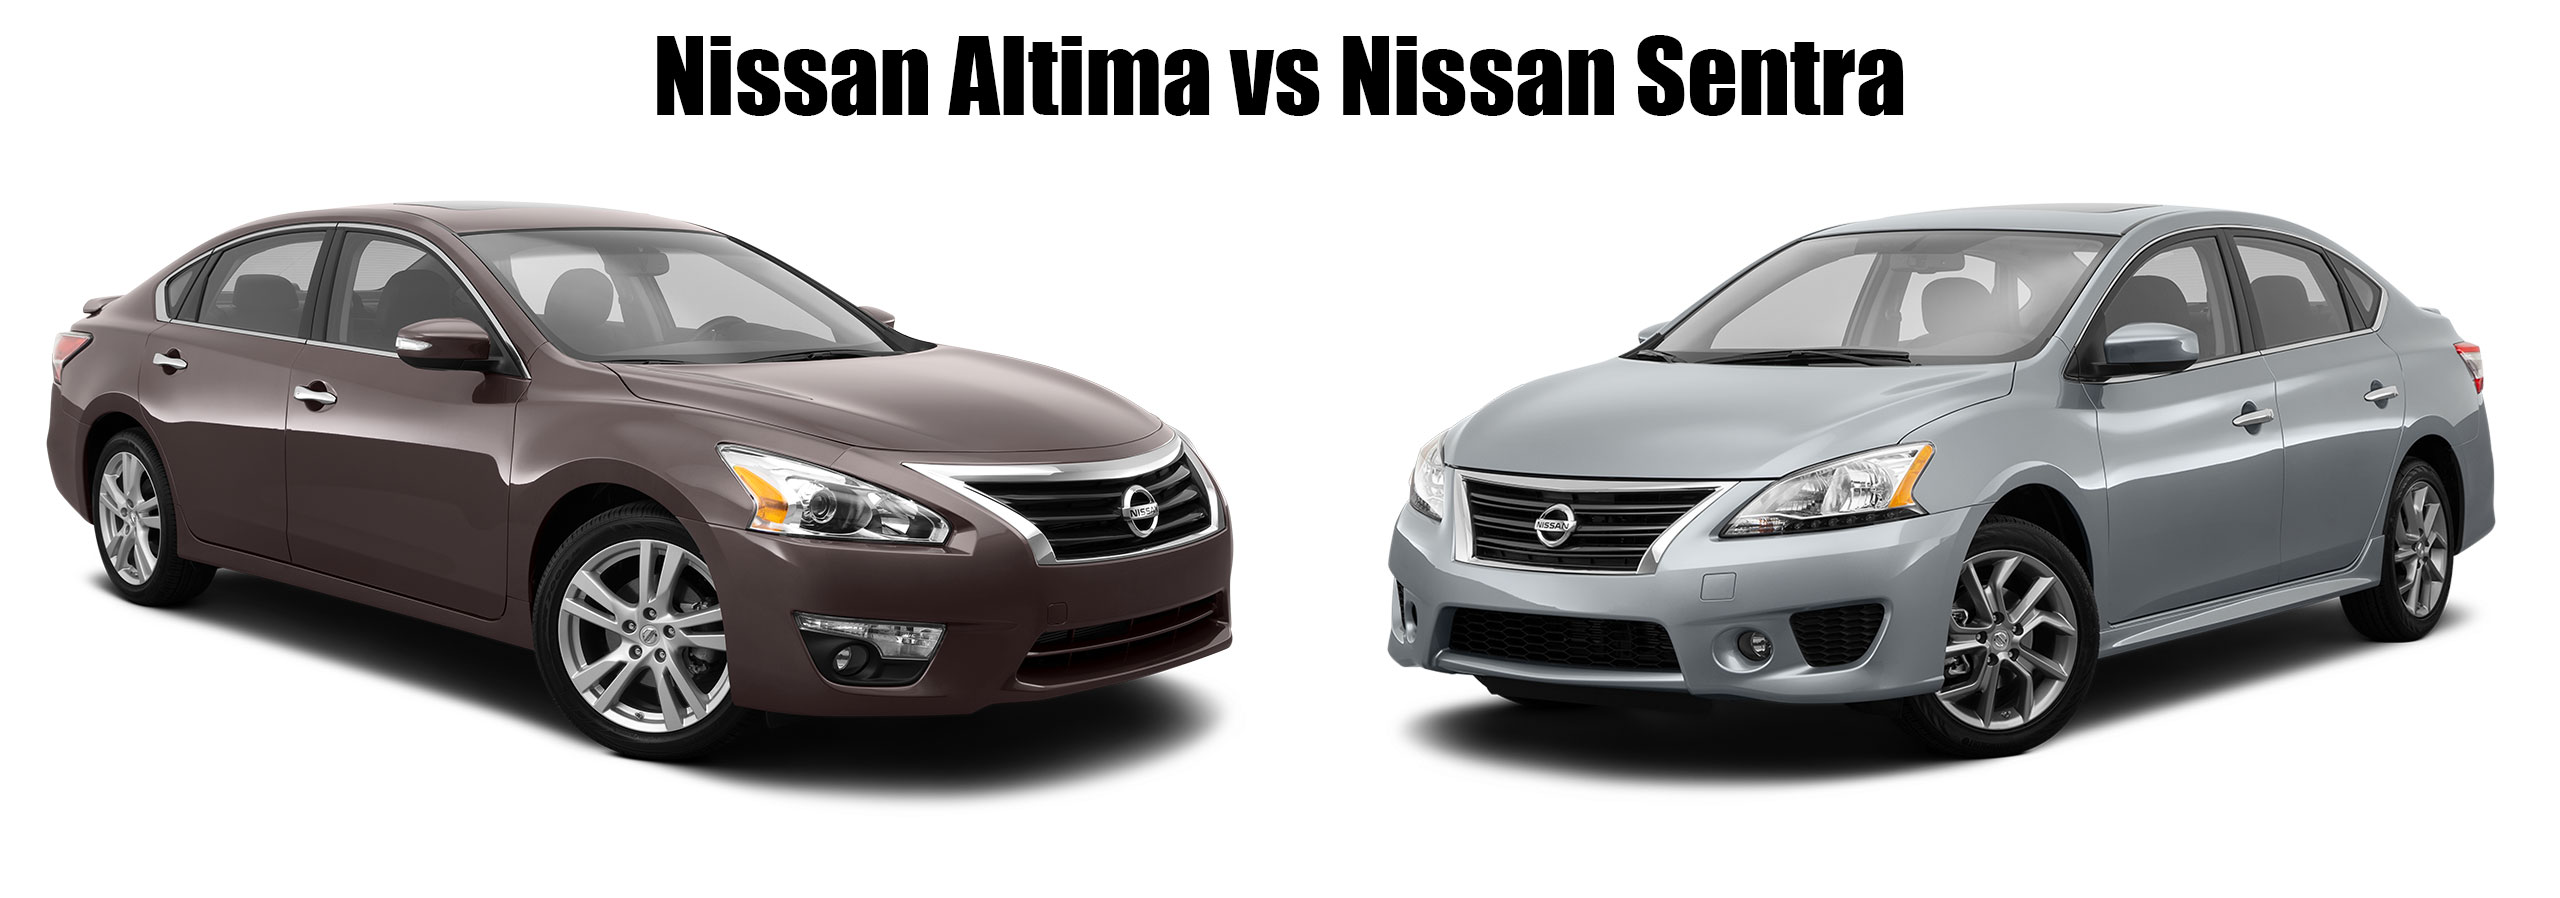 How do the Nissan Altima and Nissan Sentra compare?